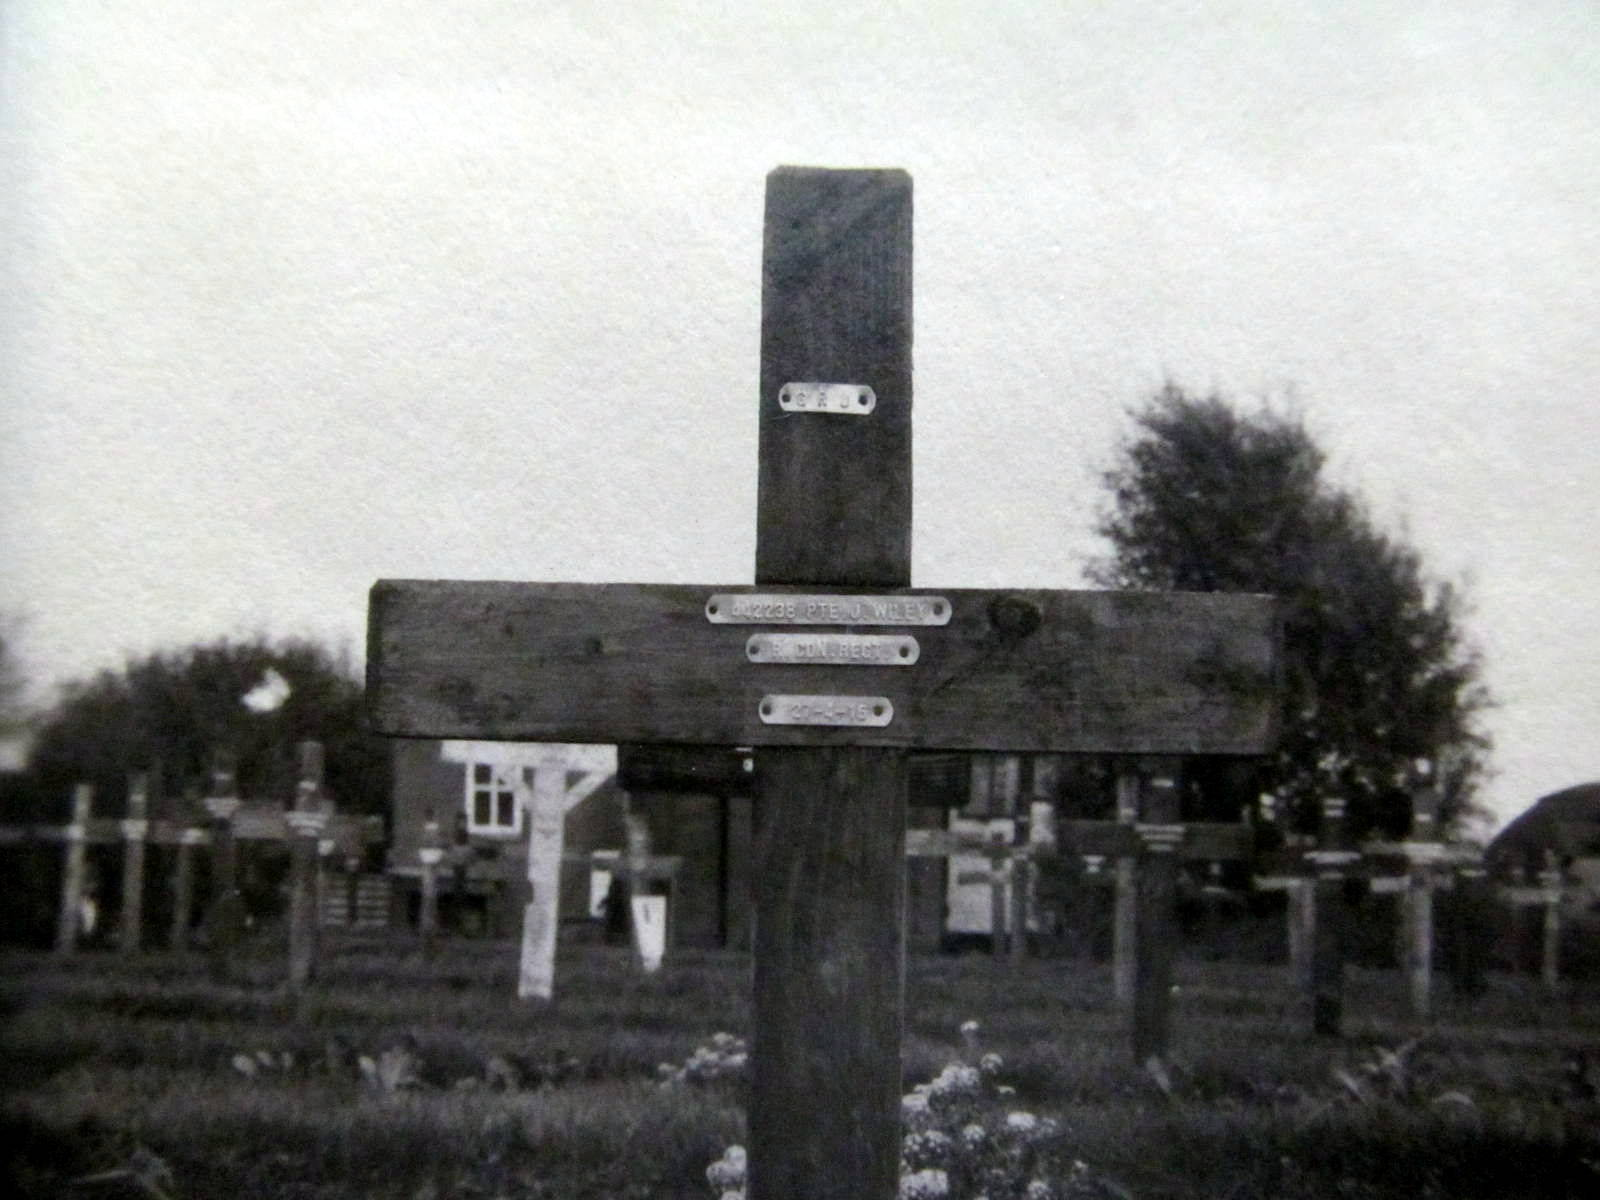 Temporary Grave Marker– Submitted for the project, Operation: Picture Me